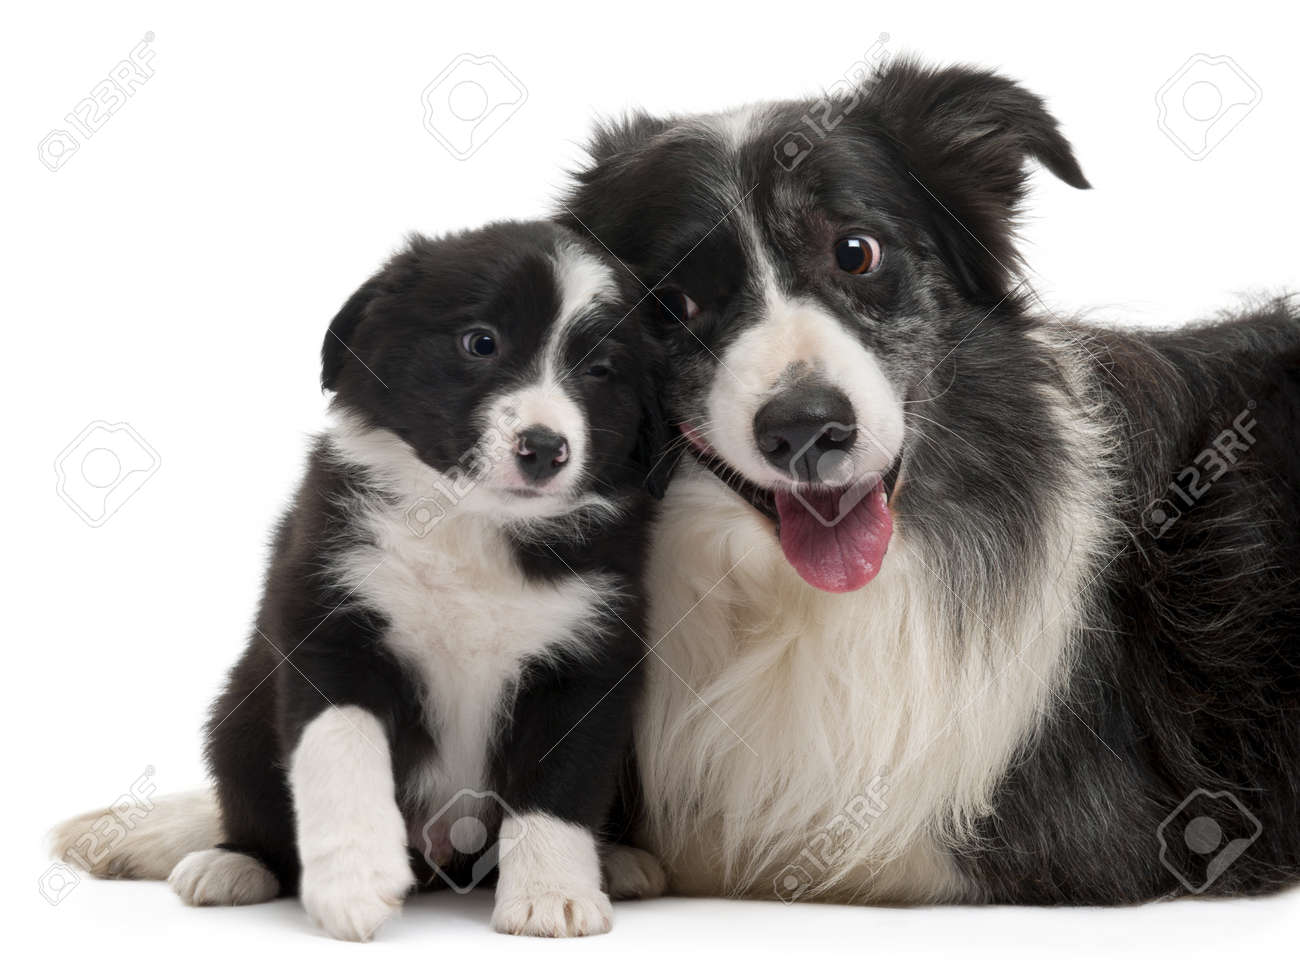 Border Collies interacting in front of white background Stock Photo - 8972528